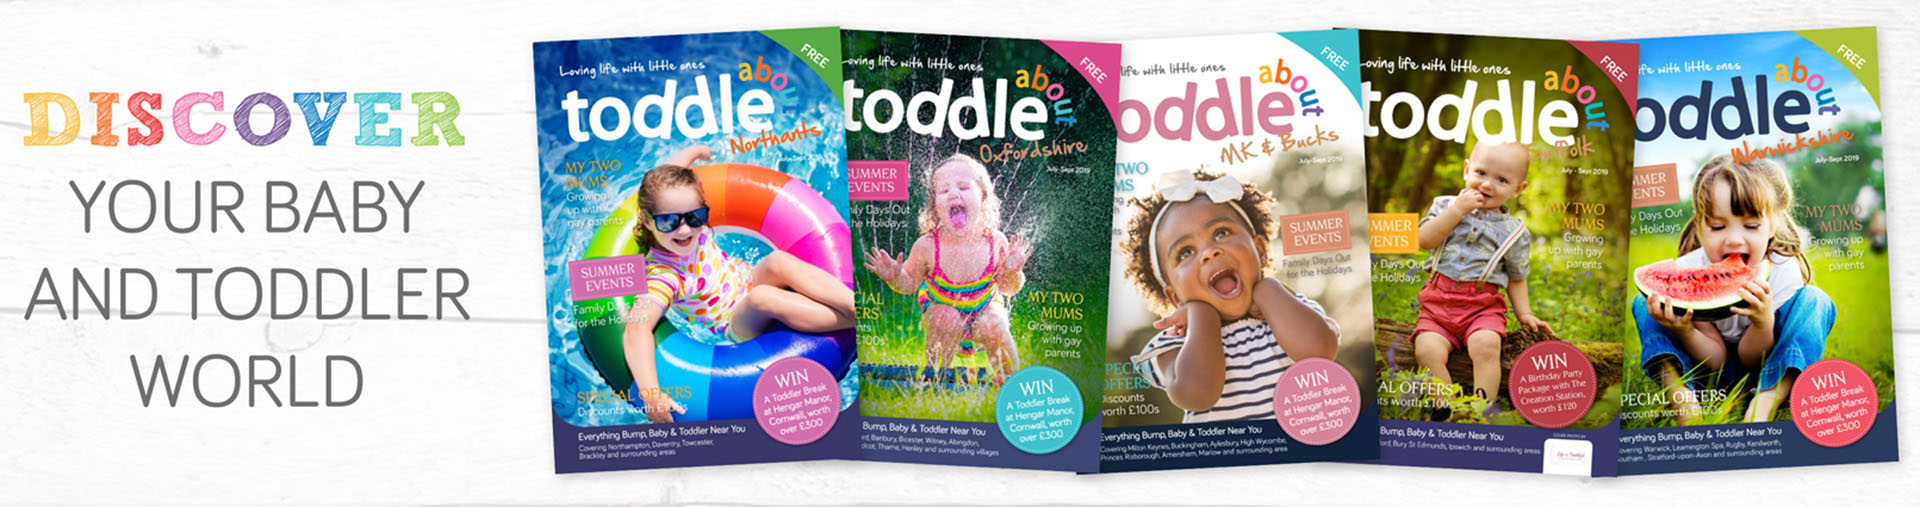 Toddle About's main image